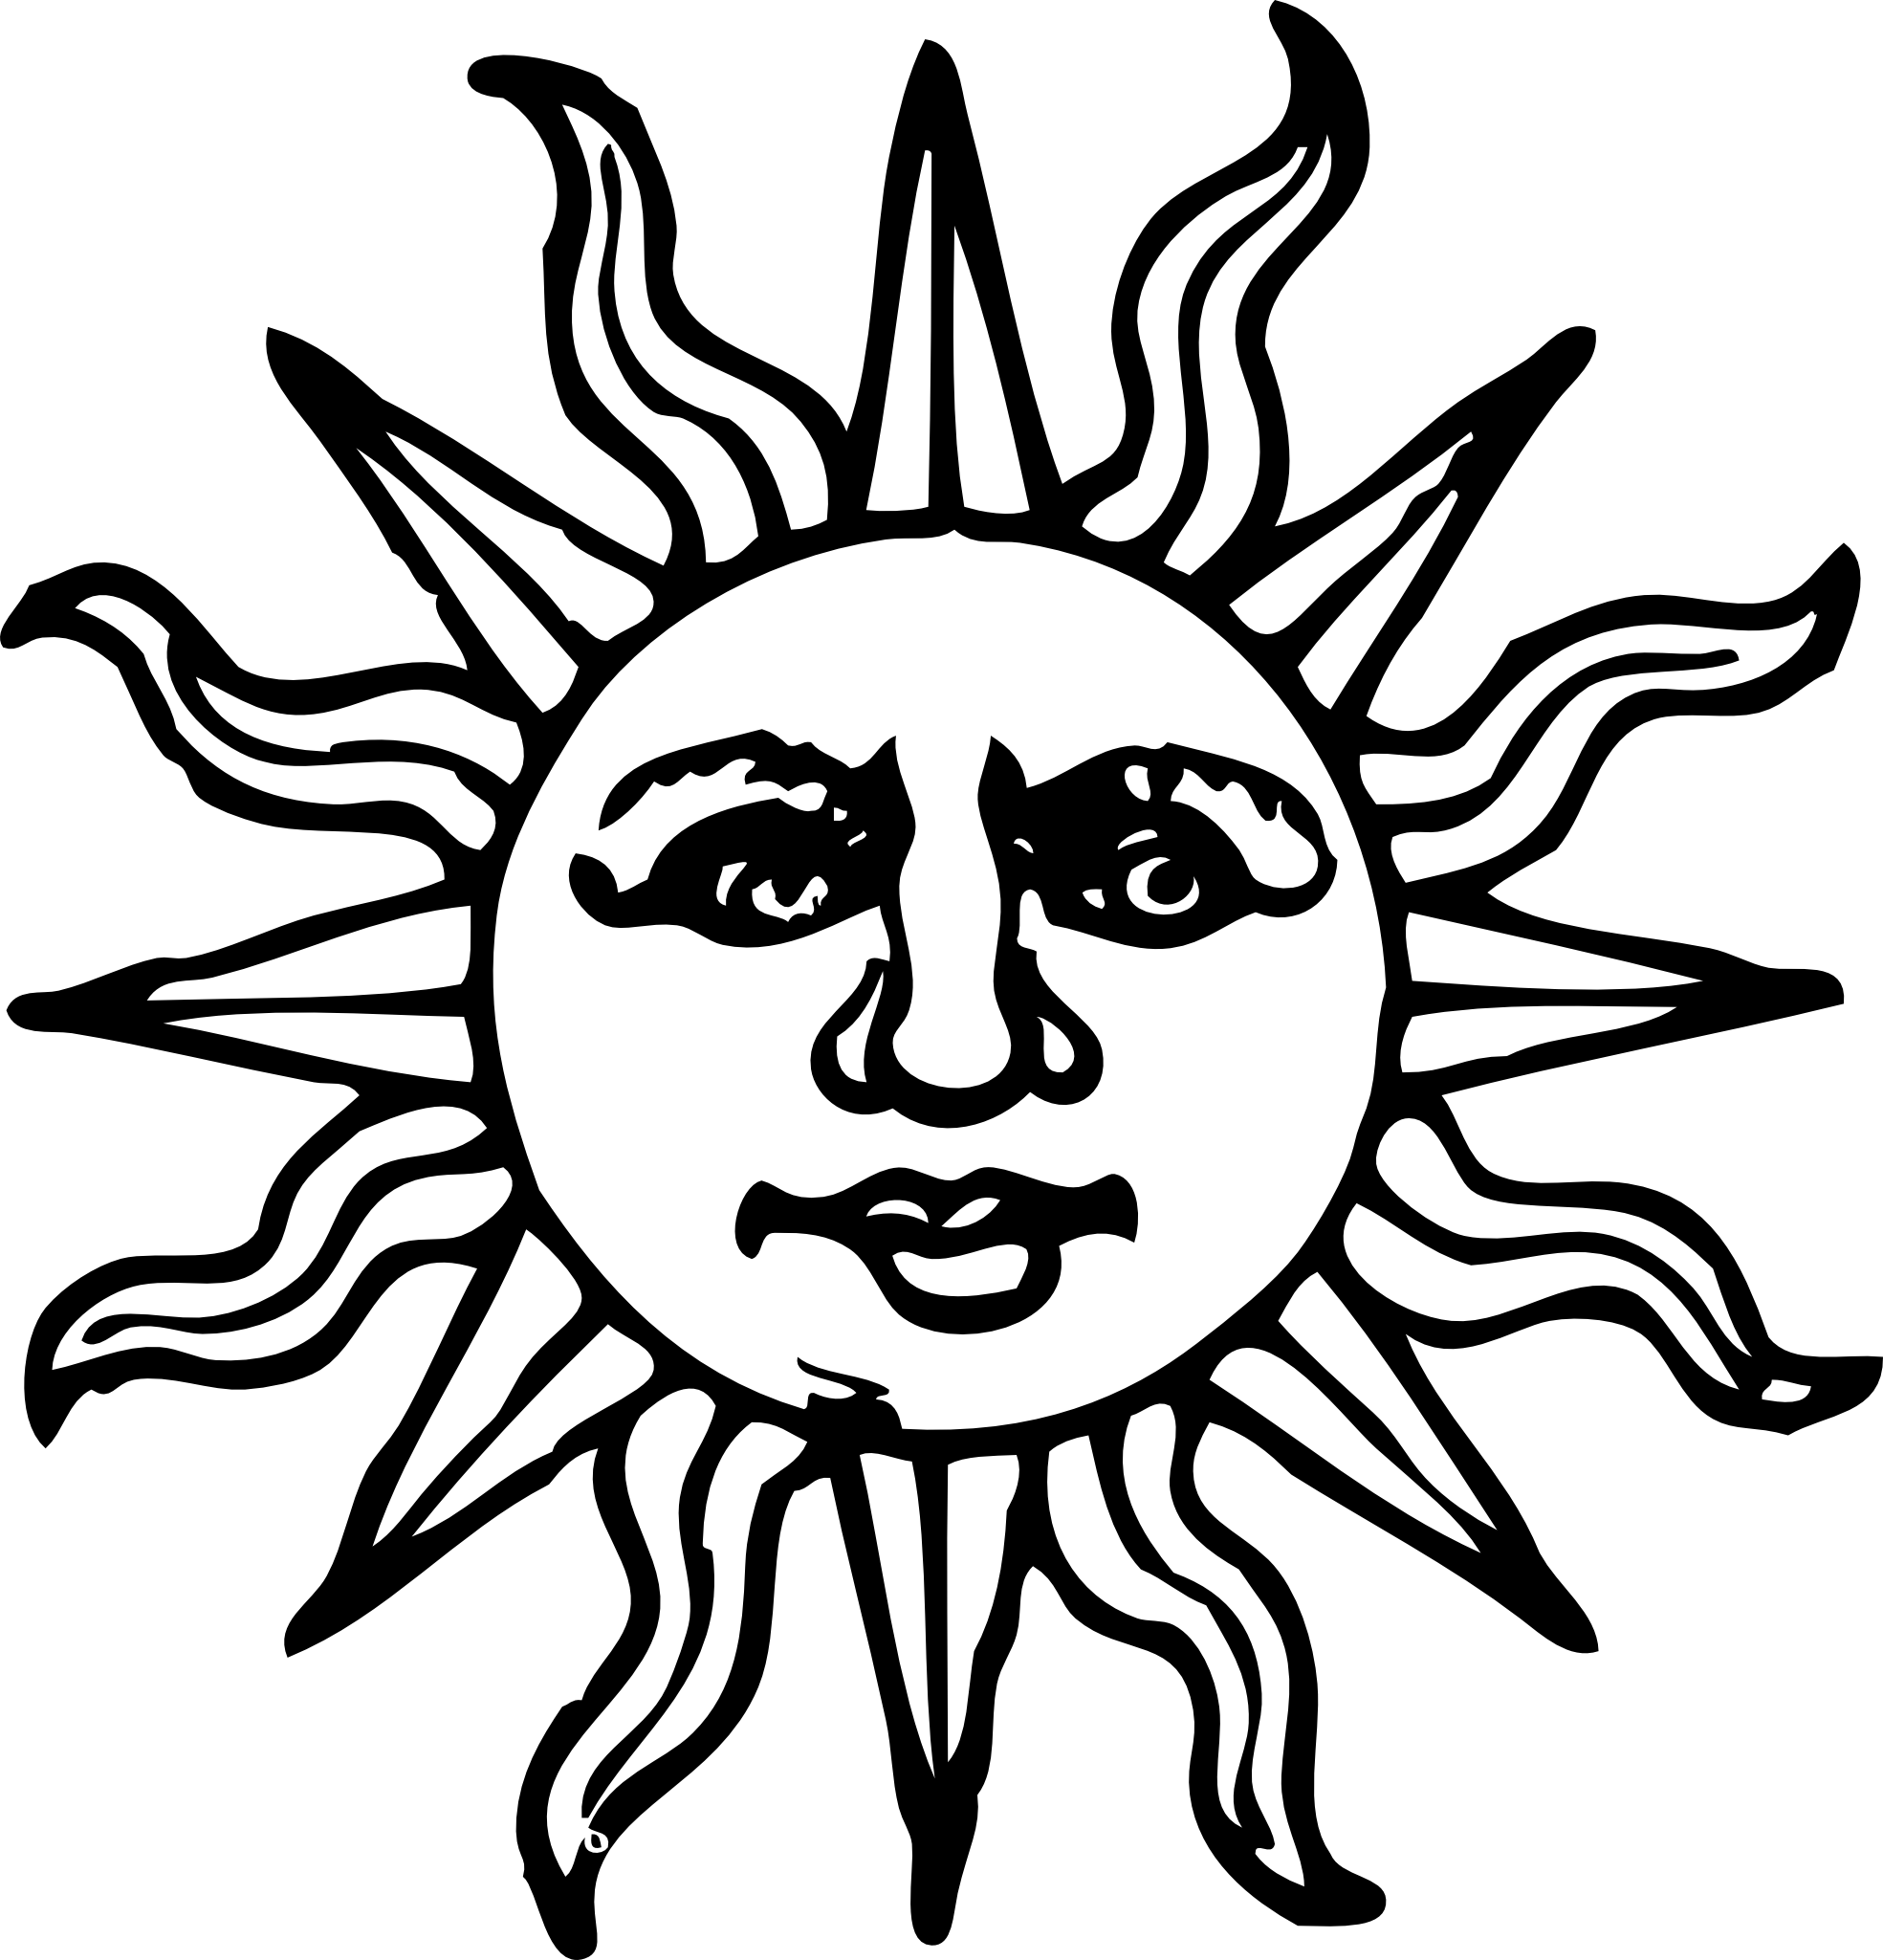 Sun Woodcut Black White Line Art Coloring Book